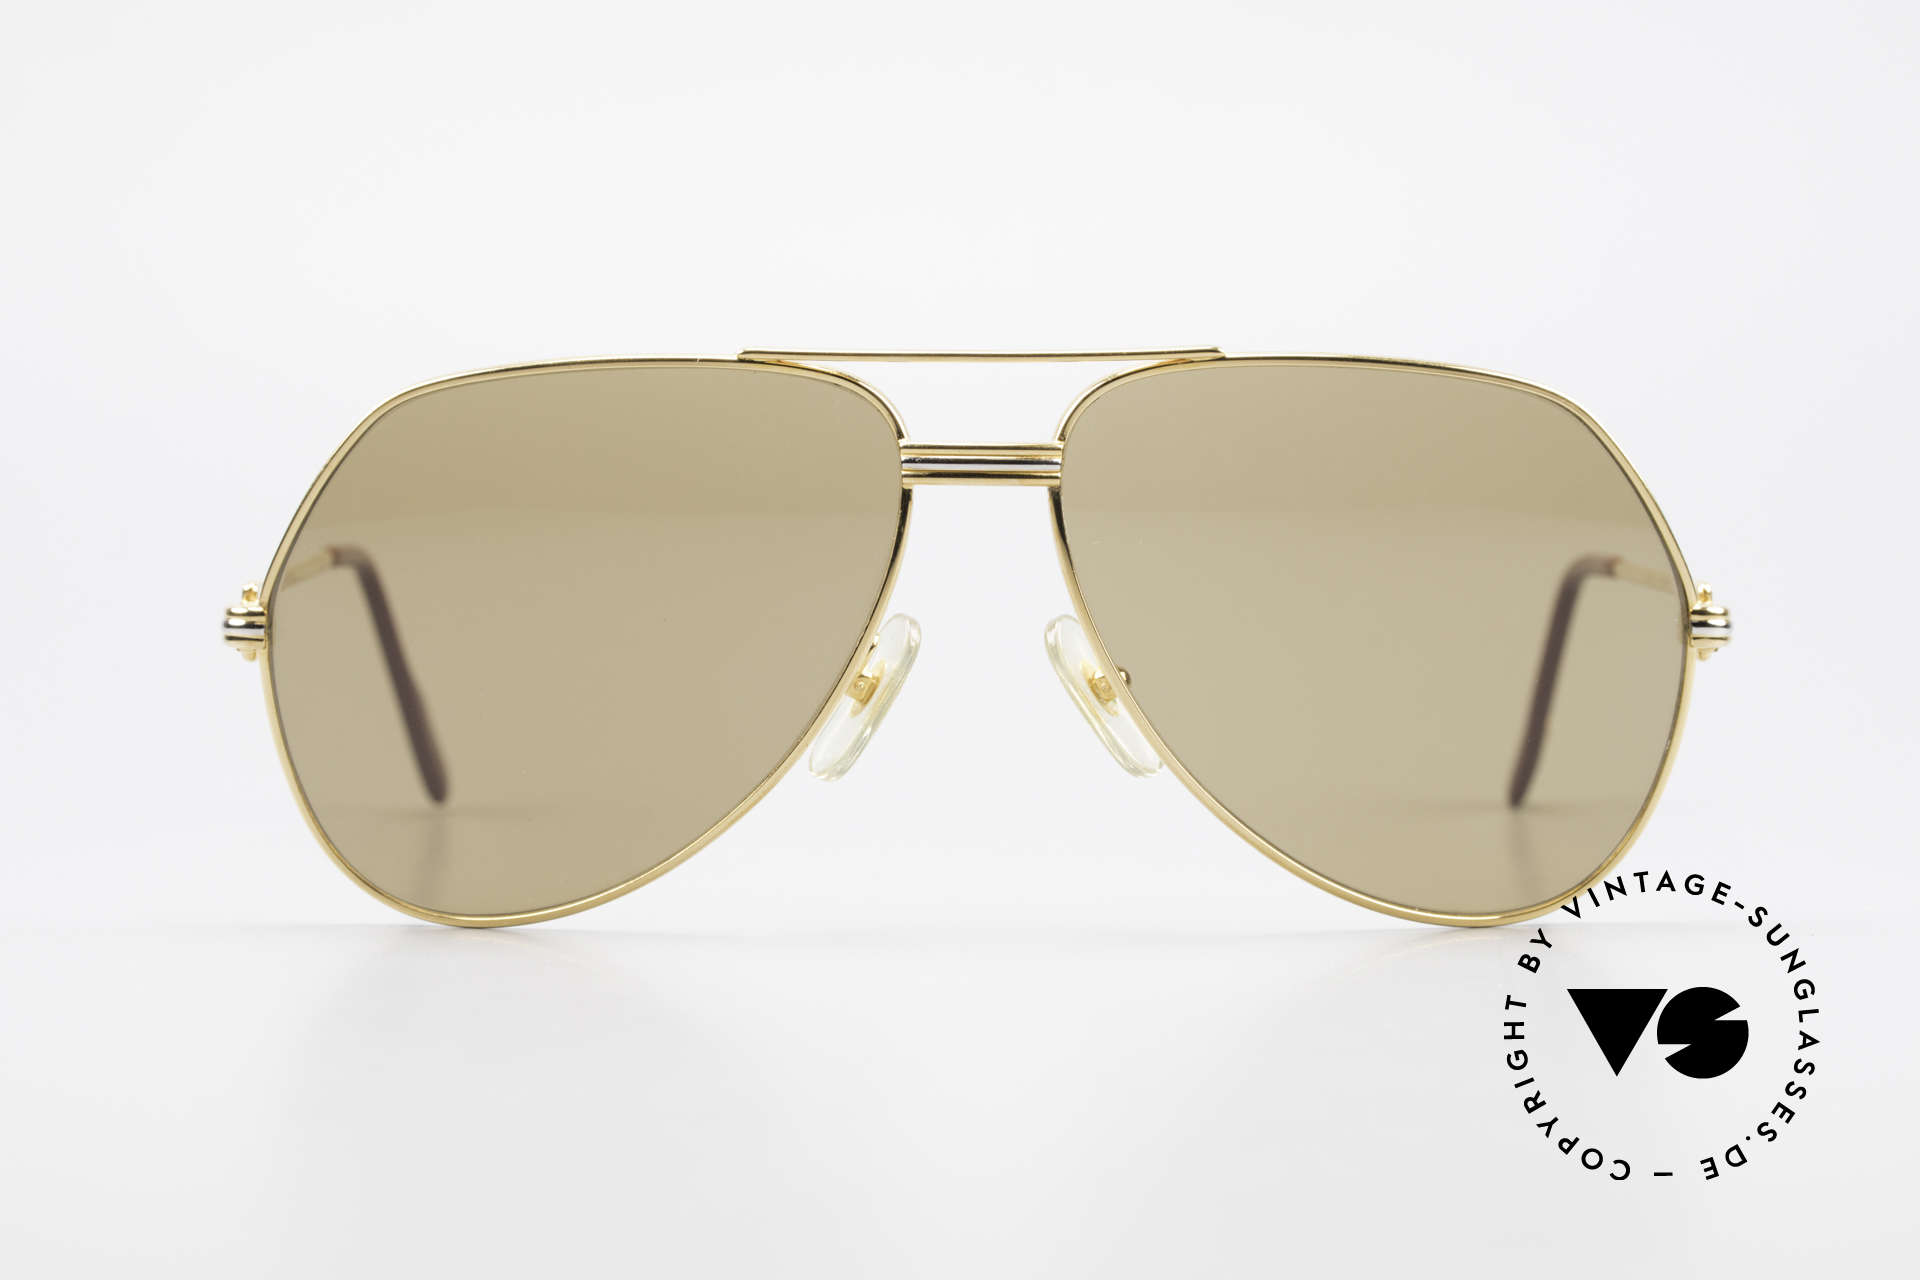 """Cartier Vendome LC - L Original Cartier Mineral Lenses, mod. """"Vendome"""" was launched in 1983 & made till 1997, Made for Men"""